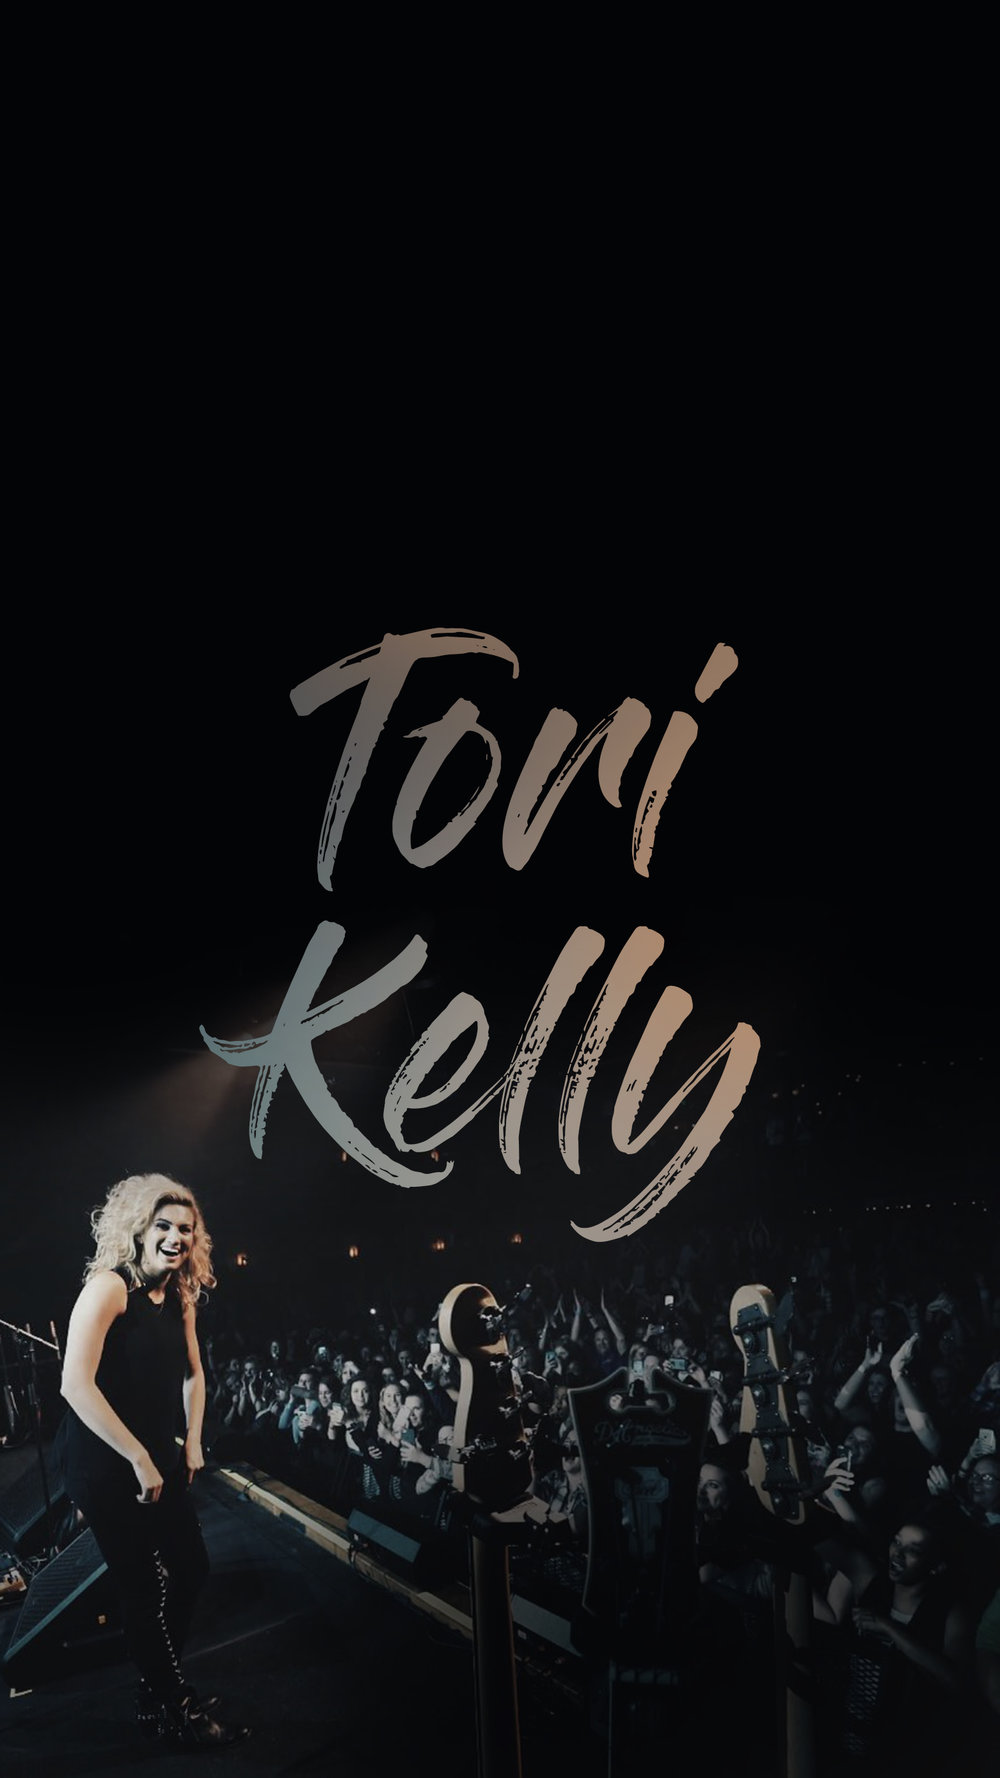 torikelly-lockscreen6.jpg